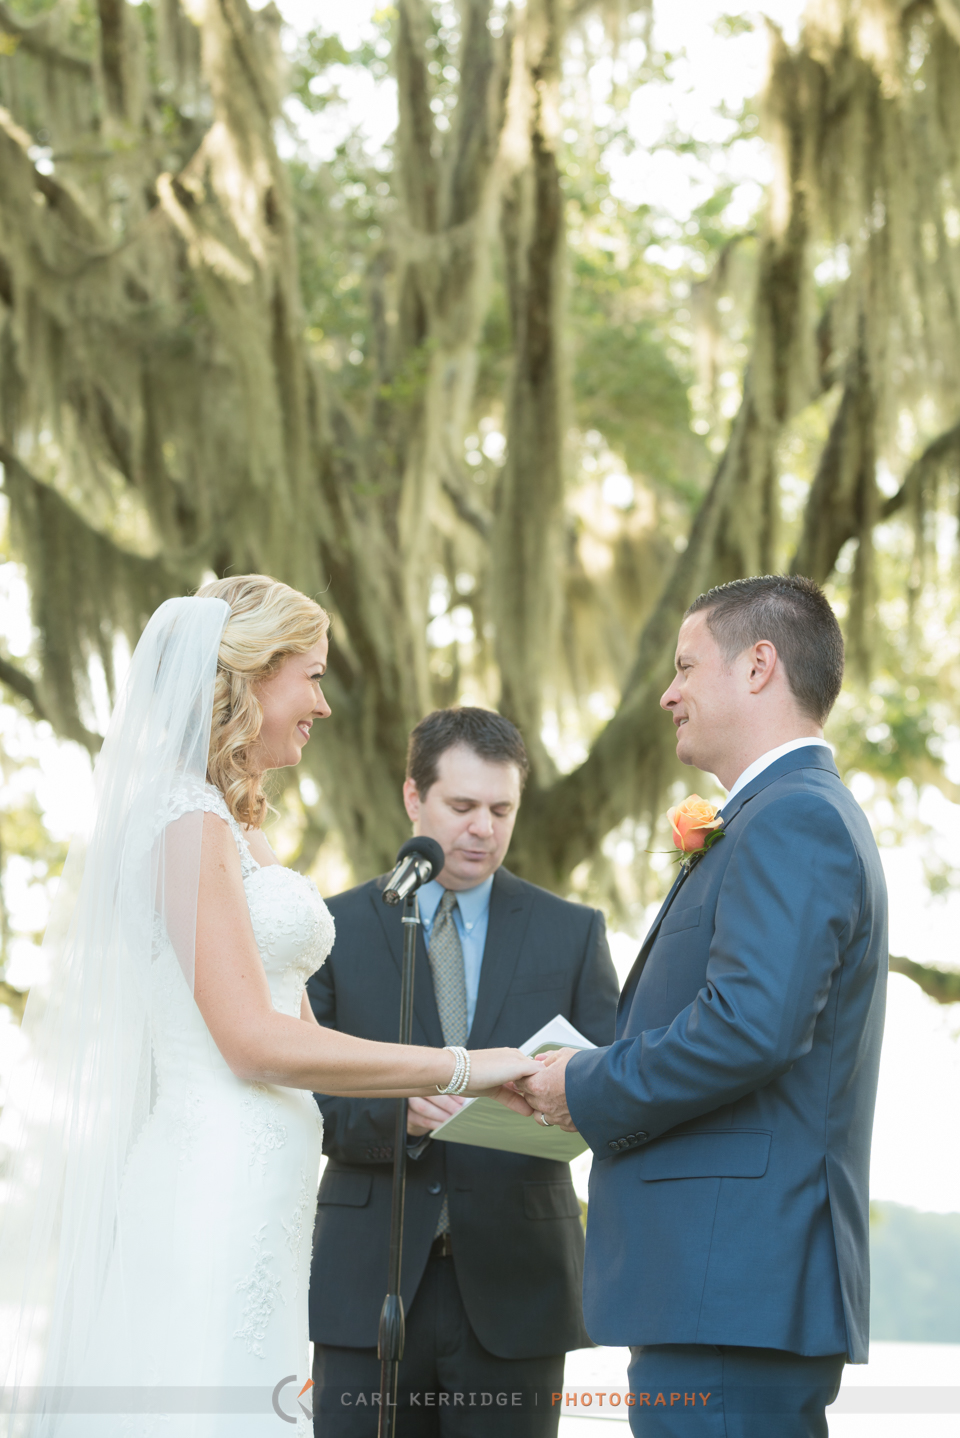 Bridal ceremony at Wachesaw Plantation under the live oaks and spanish moss